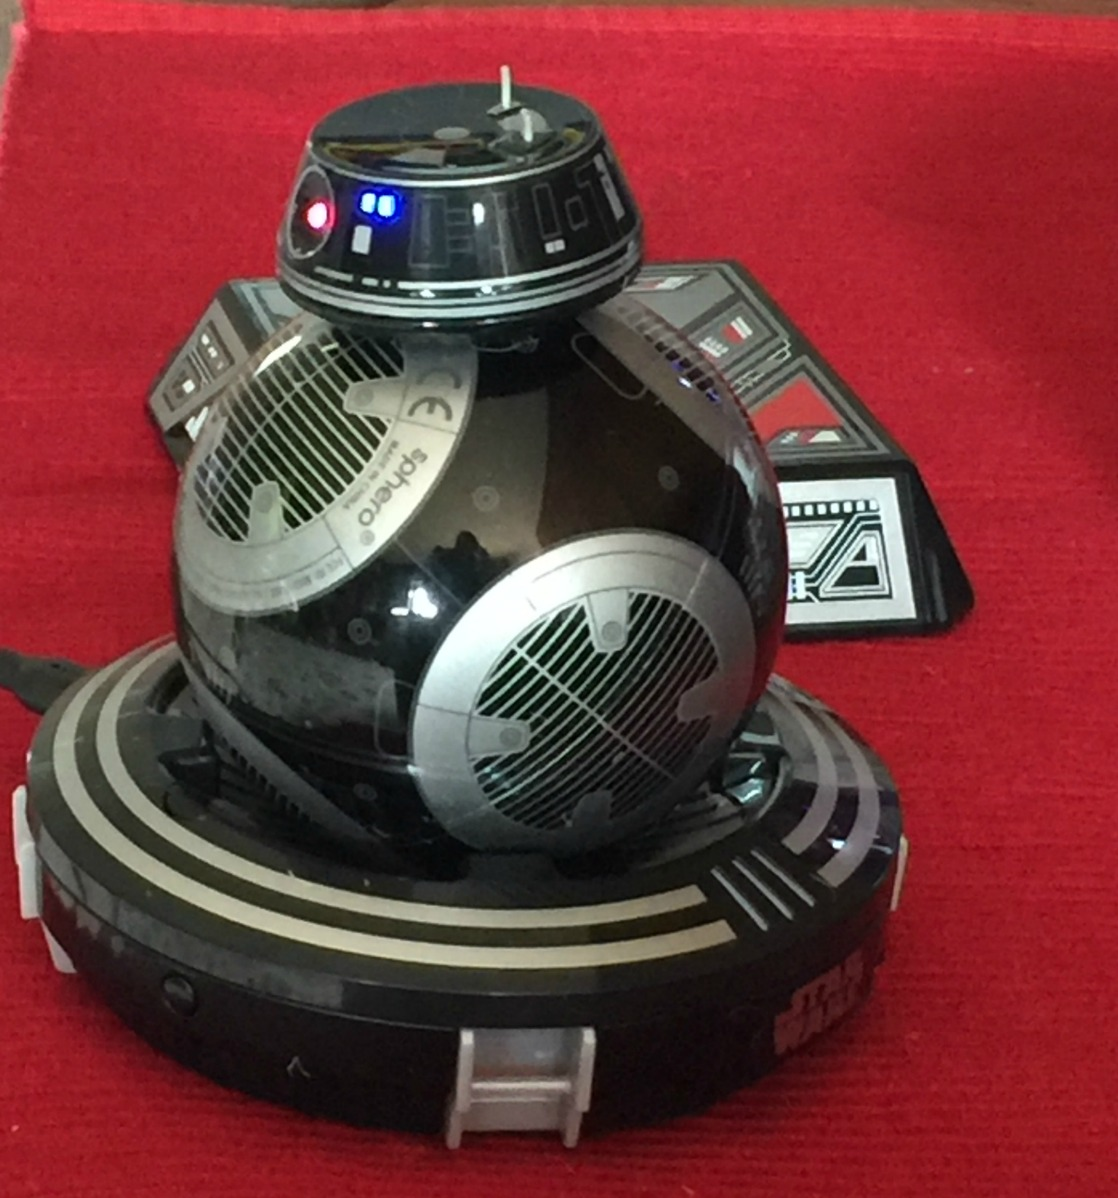 Refreshing Tech Toy Review: Star Wars BB-9E Droid from Sphero!